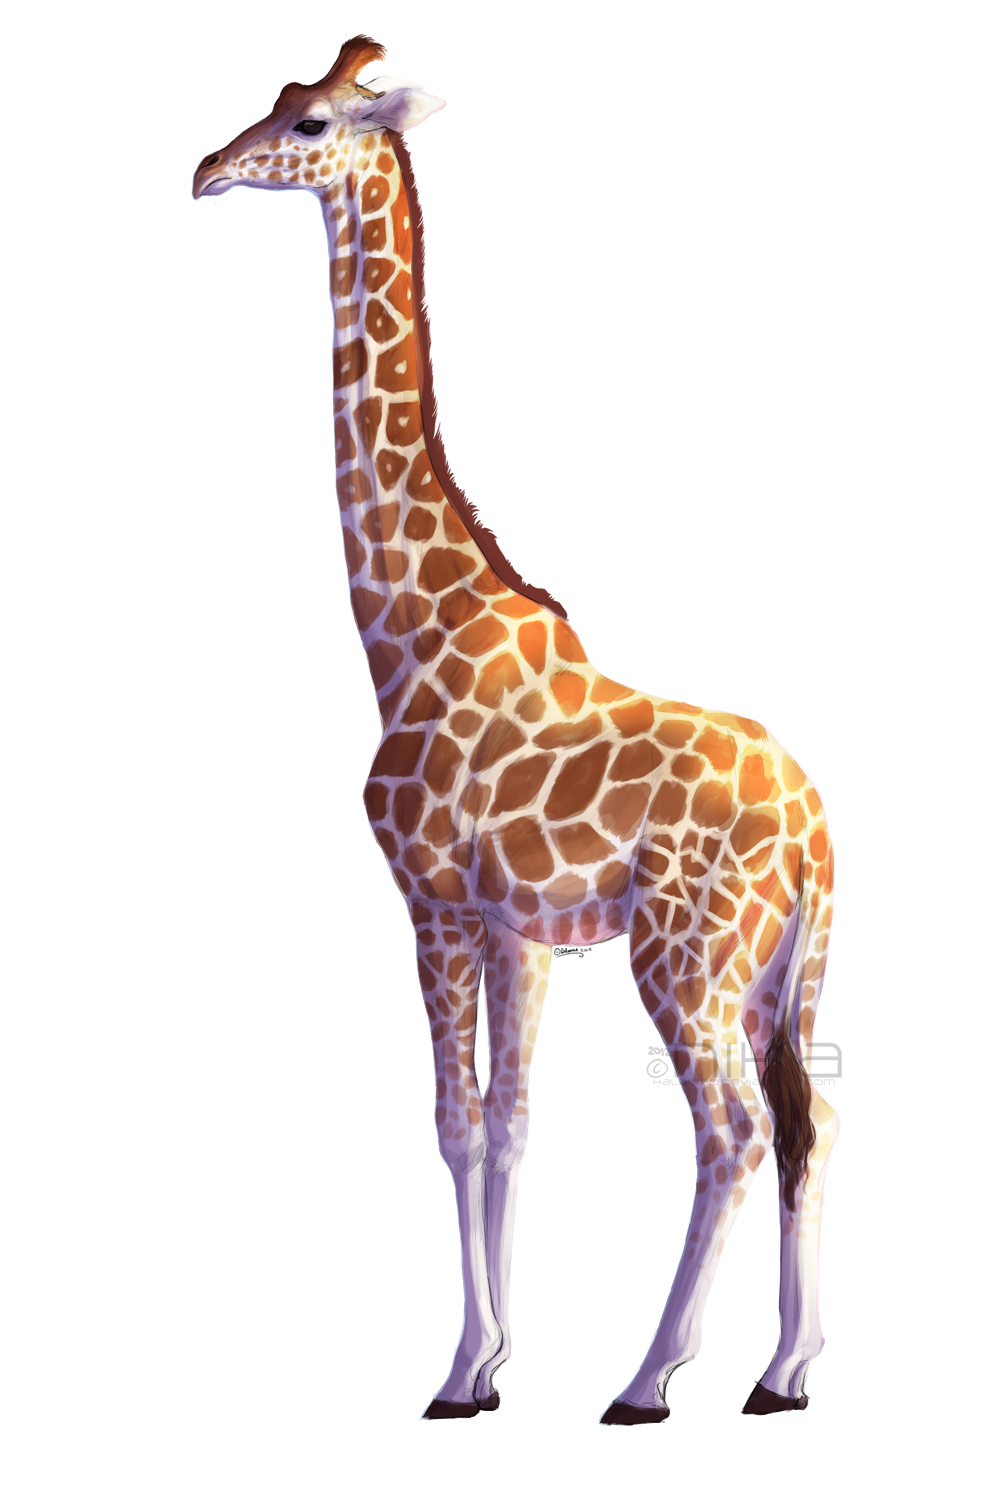 Giraffe by kalambo on DeviantArt